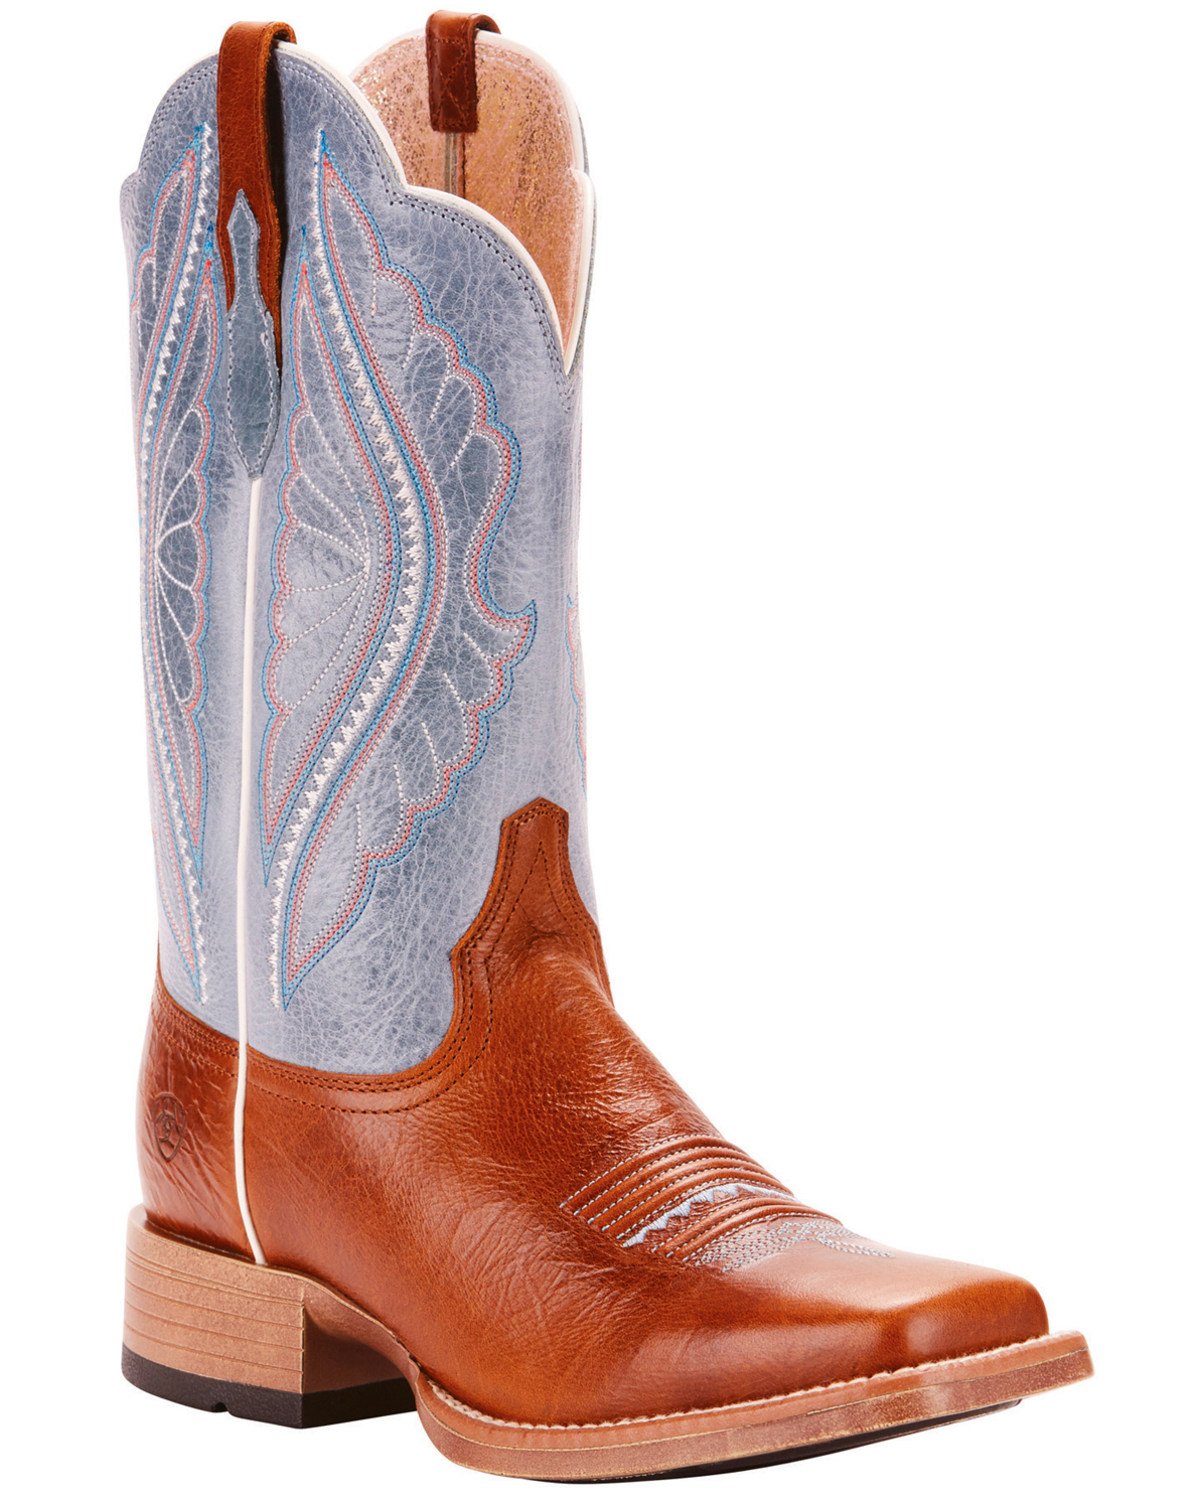 5f49a974c5d54 Ariat Women's Primetime Baby Blue Eyes Performance Cowgirl Boots - Square  Toe